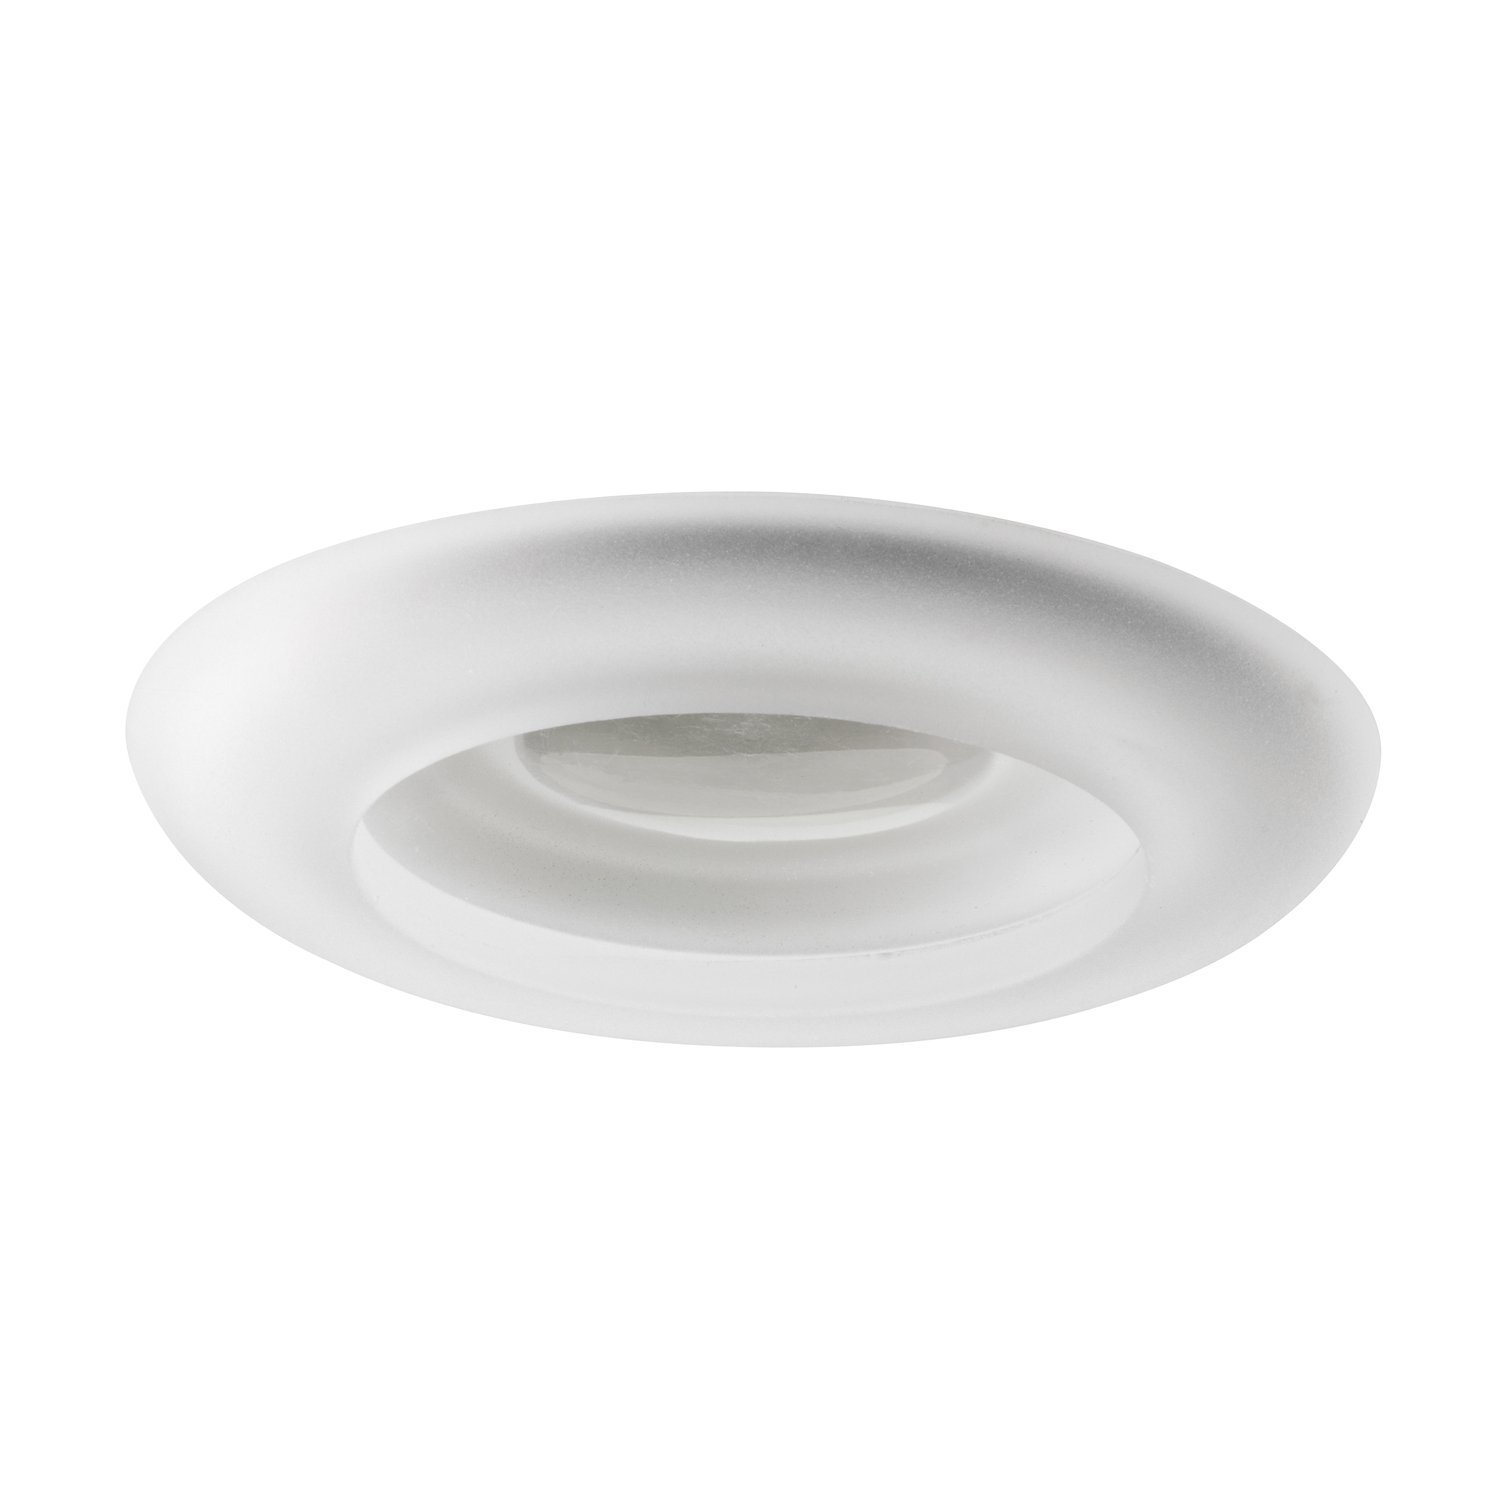 Juno lighting 4181clear 4 inch all glass shower recessed trim clear juno lighting 4181clear 4 inch all glass shower recessed trim clear recessed light fixture trims amazon aloadofball Images